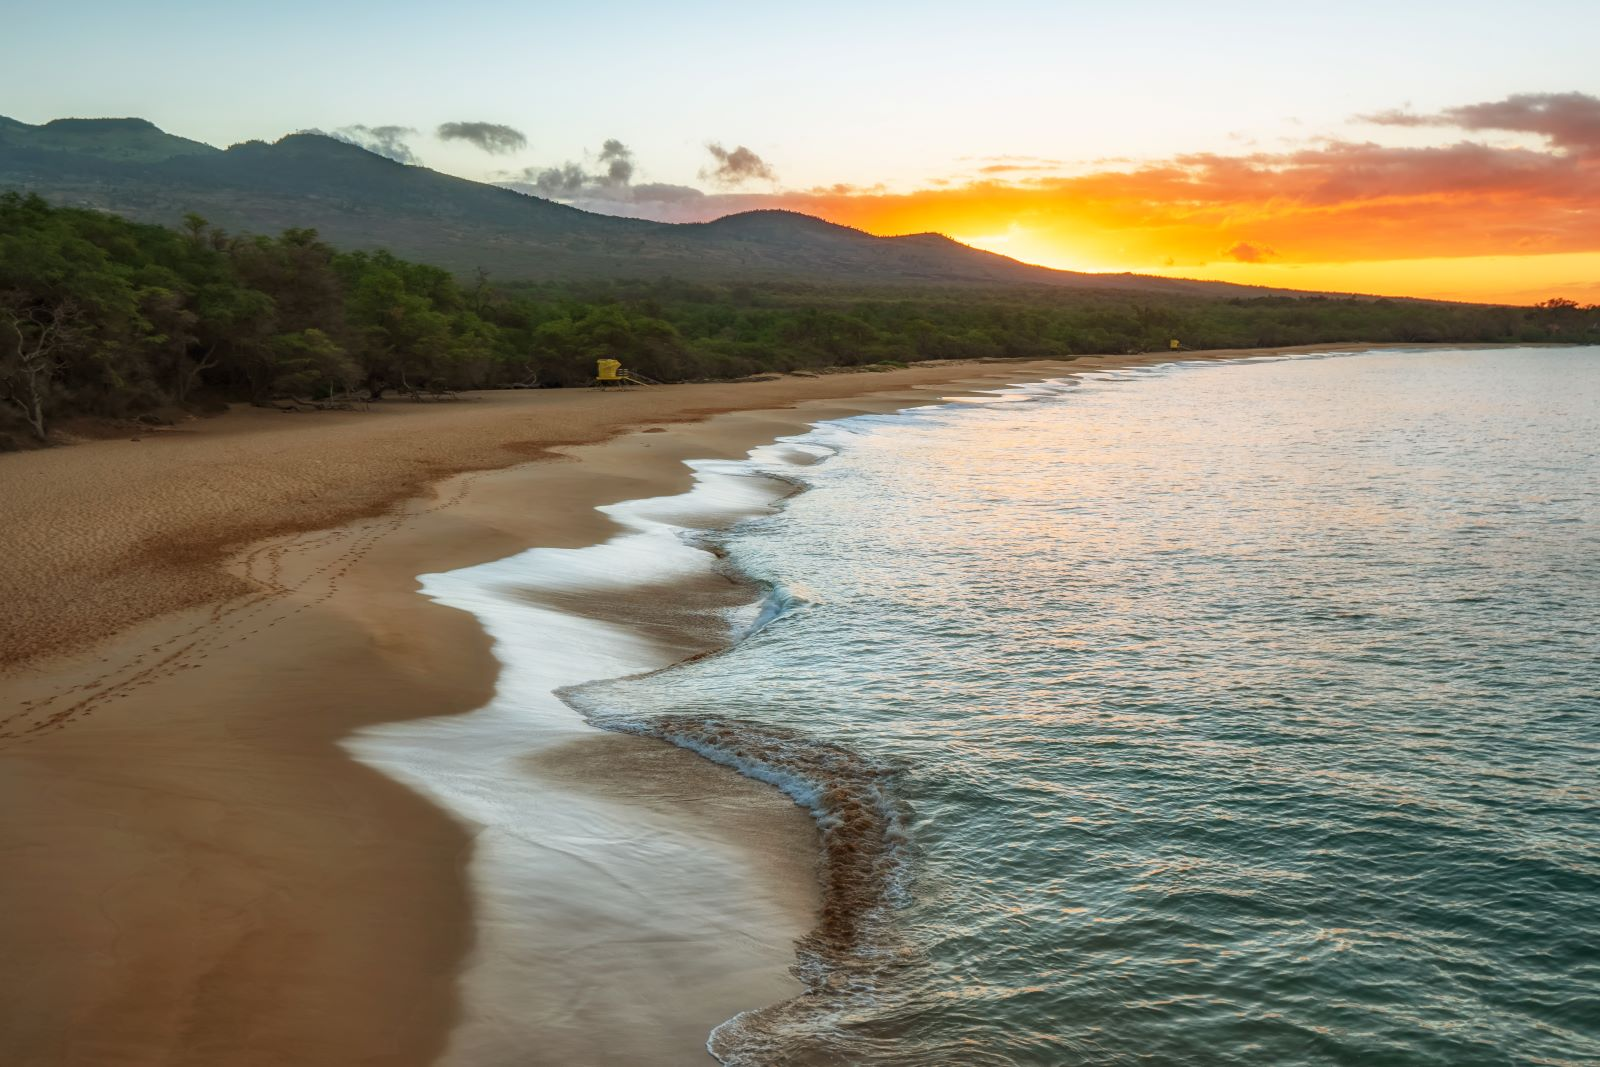 Places to Retire in Hawaii - Sandy beach at sunset showing the blue water gently lapping at the shore with trees along the beach and mountains in the background